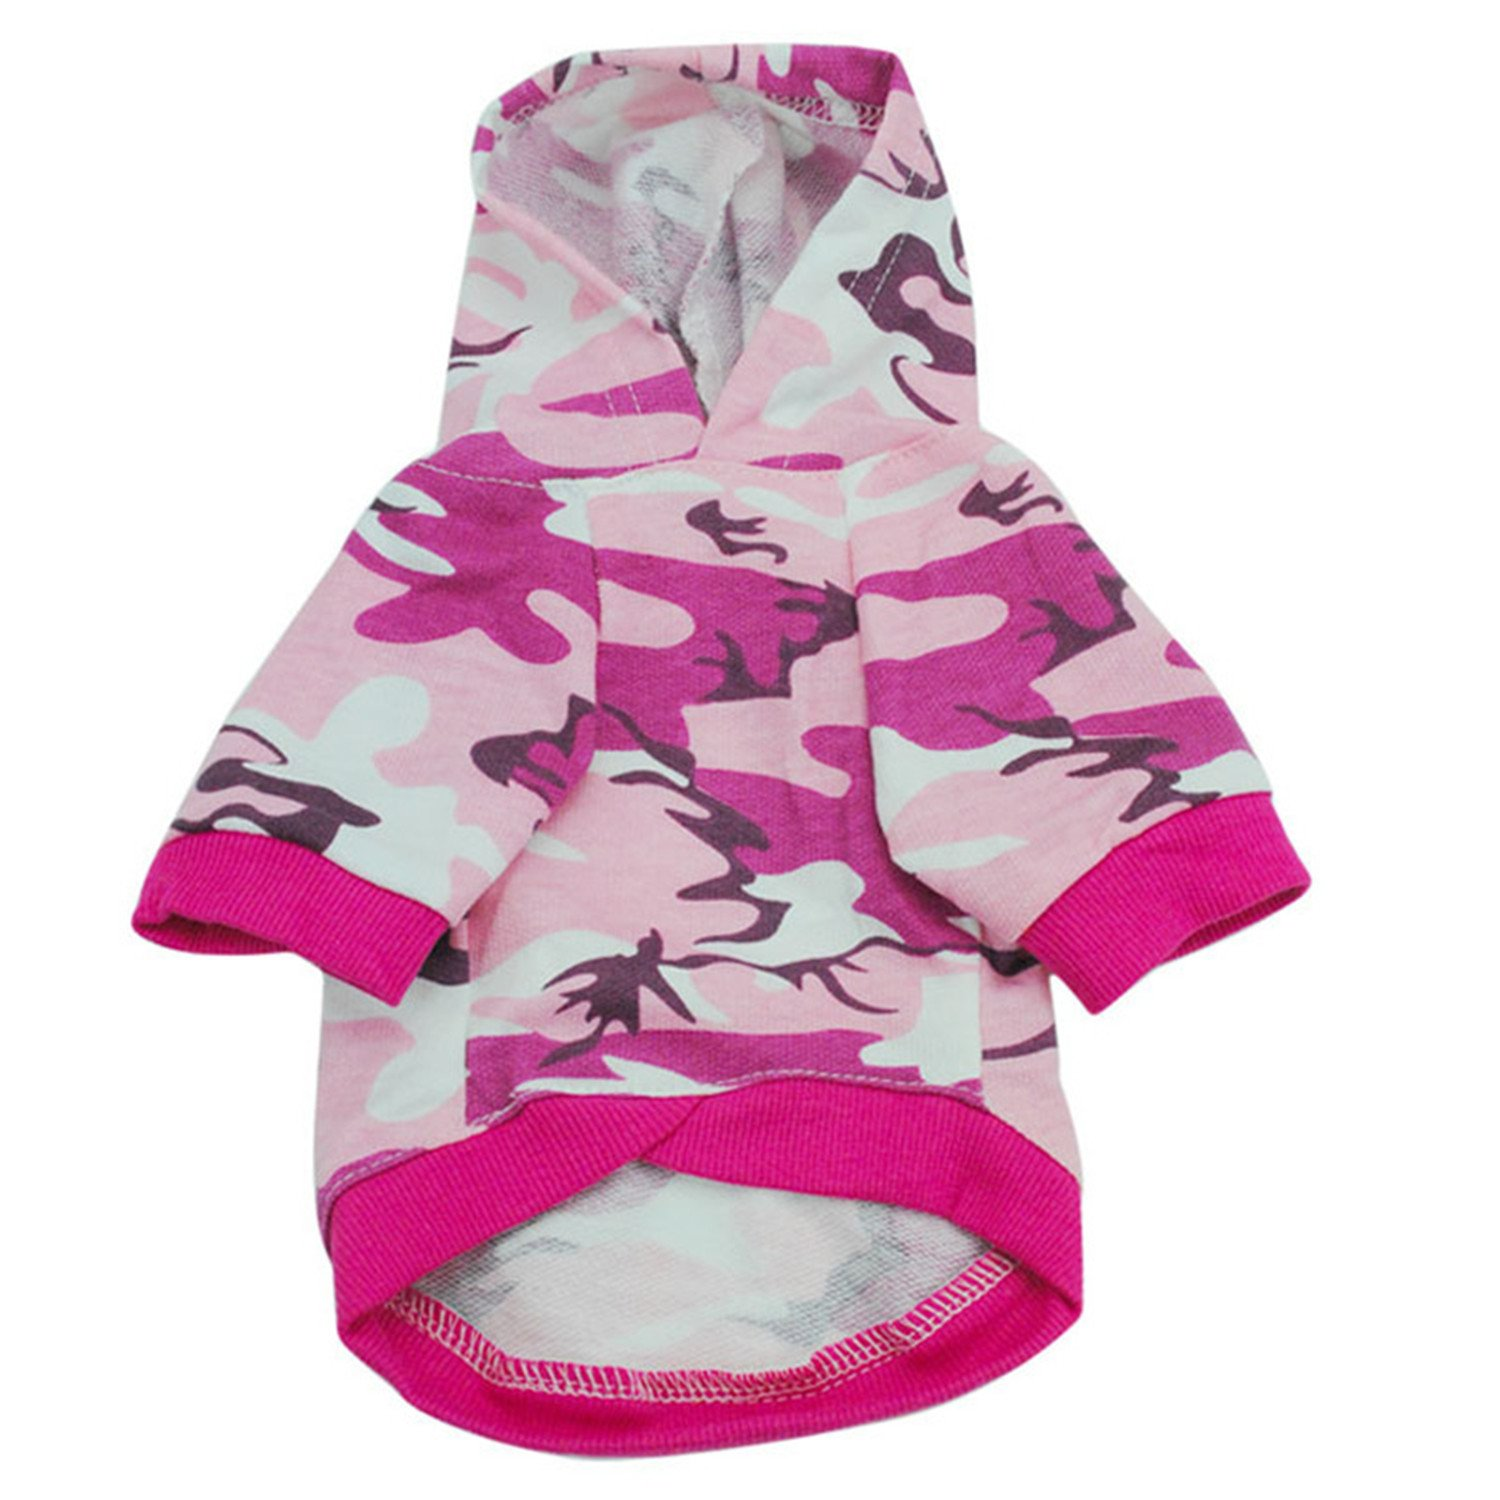 Amazon.com : HuoGuo Pet Dog Clothes For Small Dogs Camouflage Hooded Sweatshirt Dog Coat Jacket Costume For Puppy Chihuahua Hoodie Clothing Apparel Green L ...